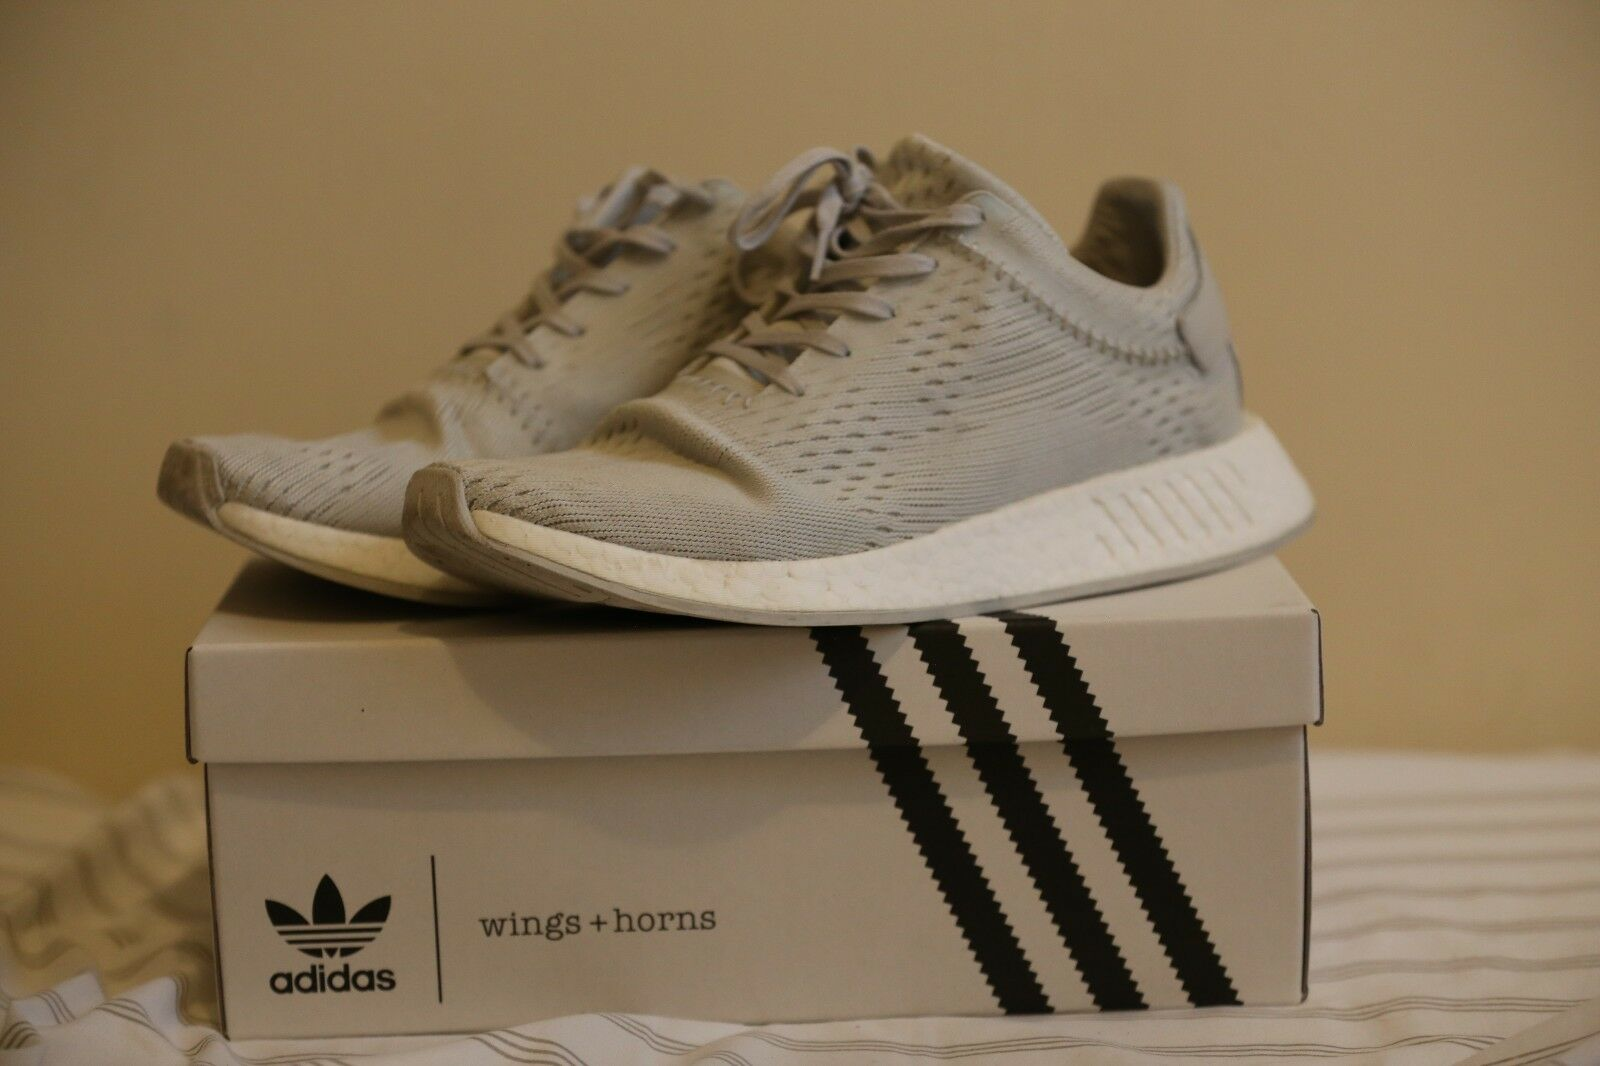 c3cd8205d adidas NMD R2 Wings Horns Primeknit Hint Bb3118 10.5 for sale online ...